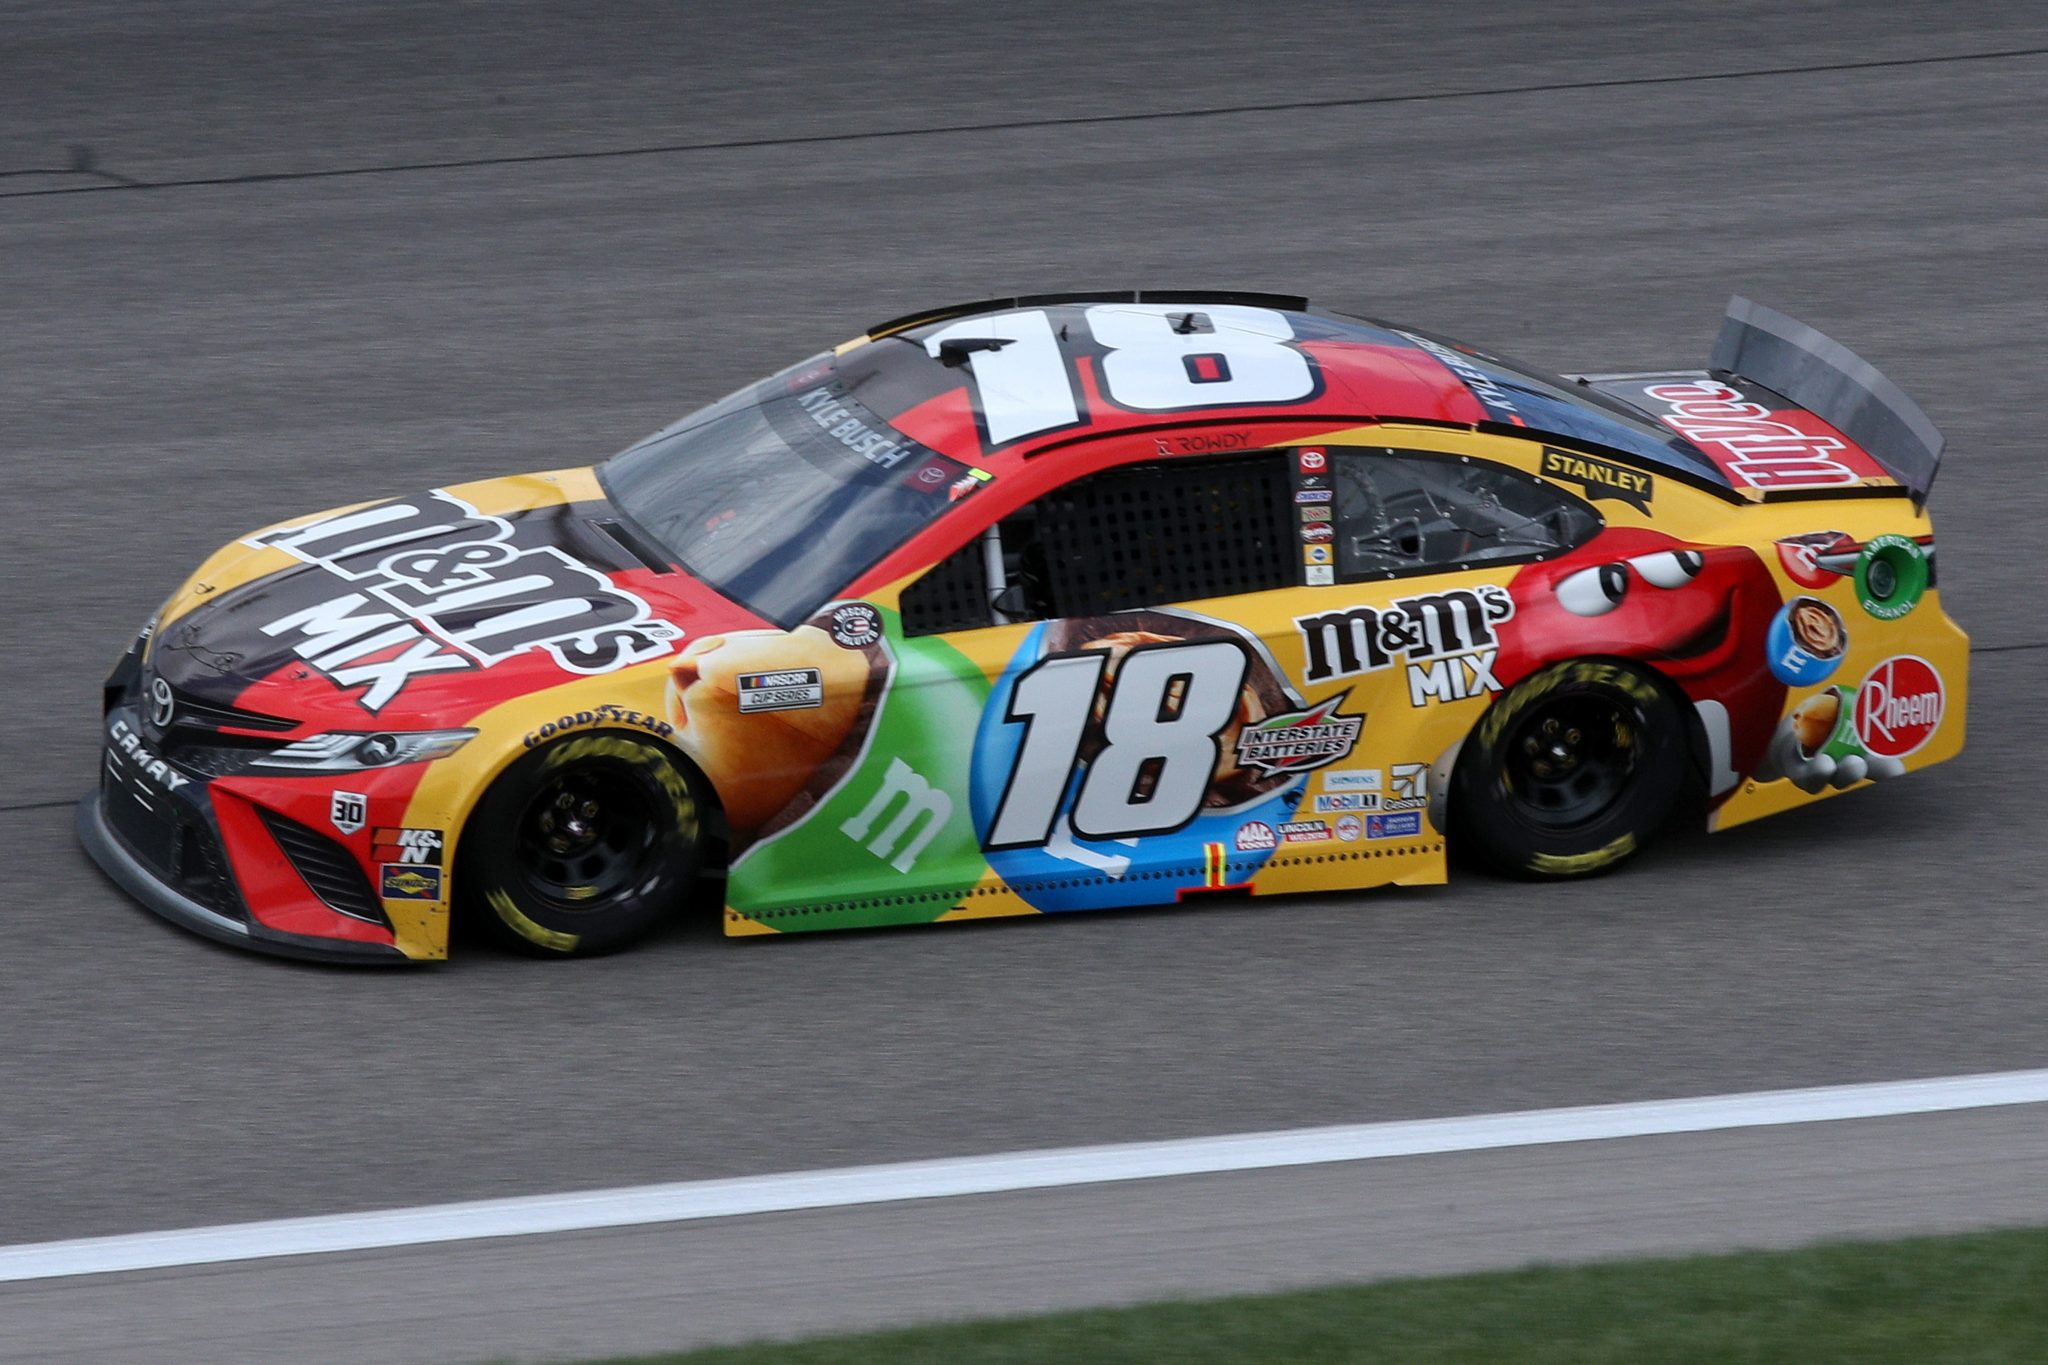 KANSAS CITY, KANSAS - MAY 02: Kyle Busch, driver of the #18 M&M's Mix Toyota, drives during the NASCAR Cup Series Buschy McBusch Race 400 at Kansas Speedway on May 02, 2021 in Kansas City, Kansas. (Photo by Sean Gardner/Getty Images) | Getty Images